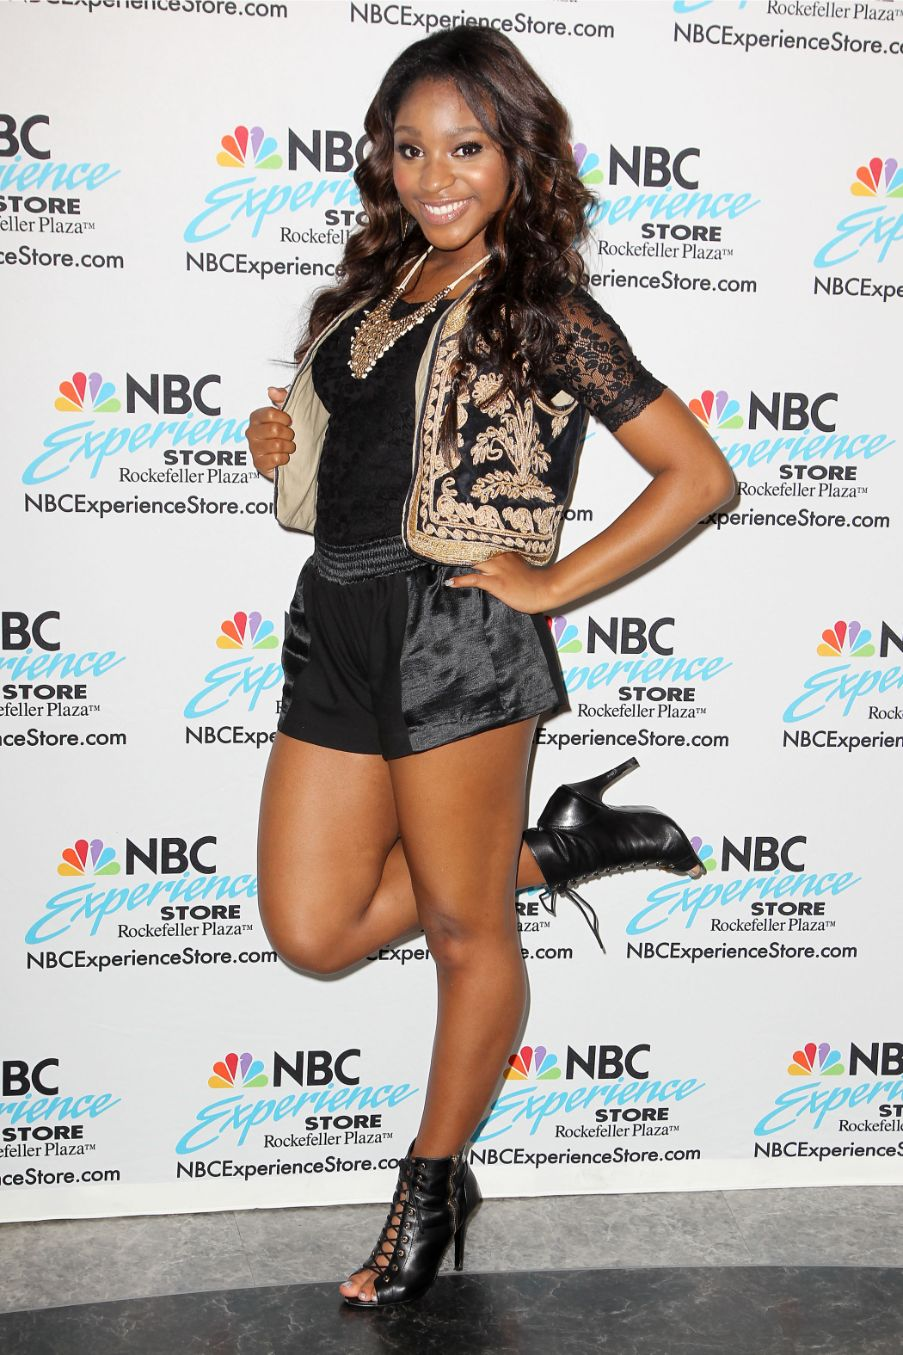 normani, 2013, nbc experience store, new york